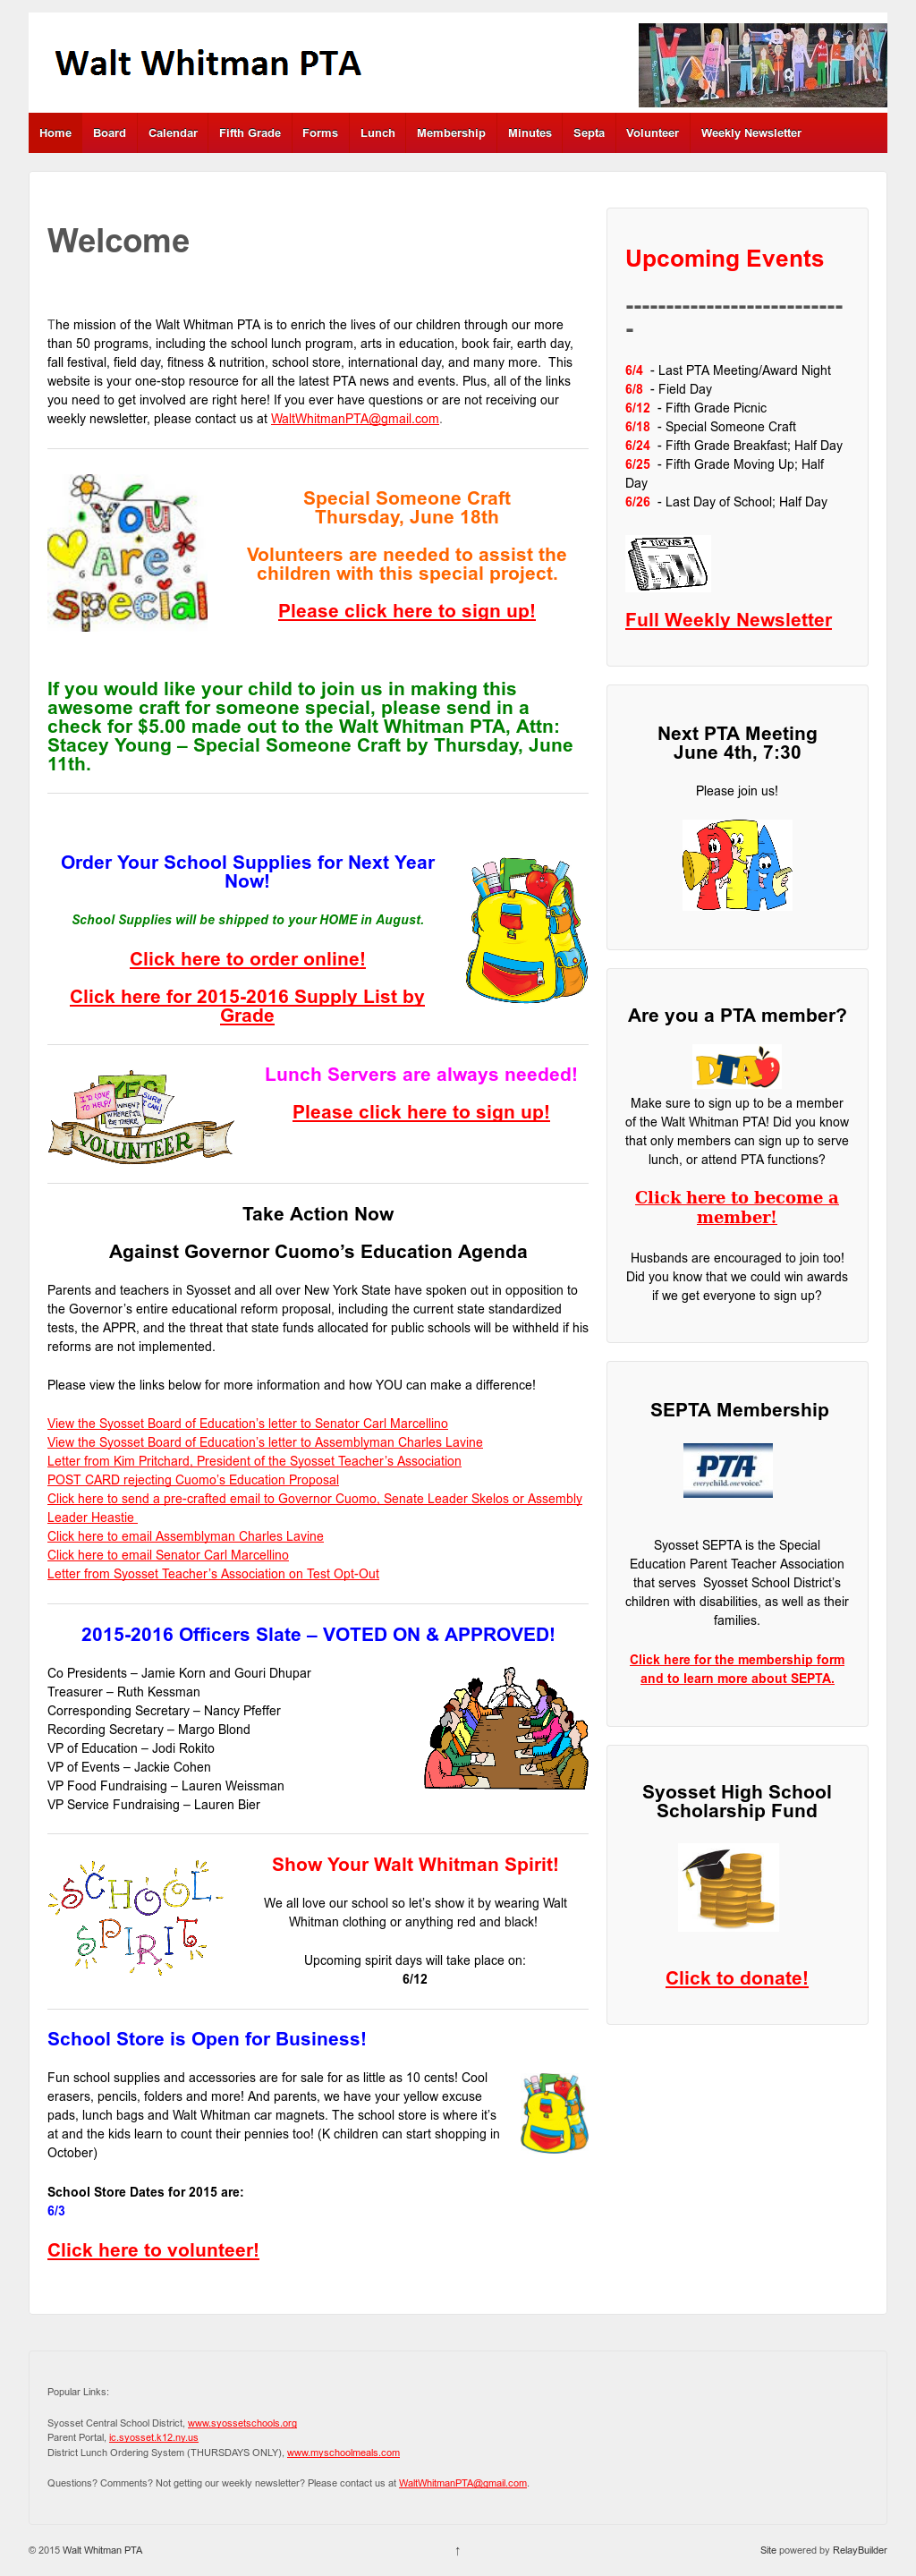 Walt Whitman Pta Competitors, Revenue and Employees - Owler